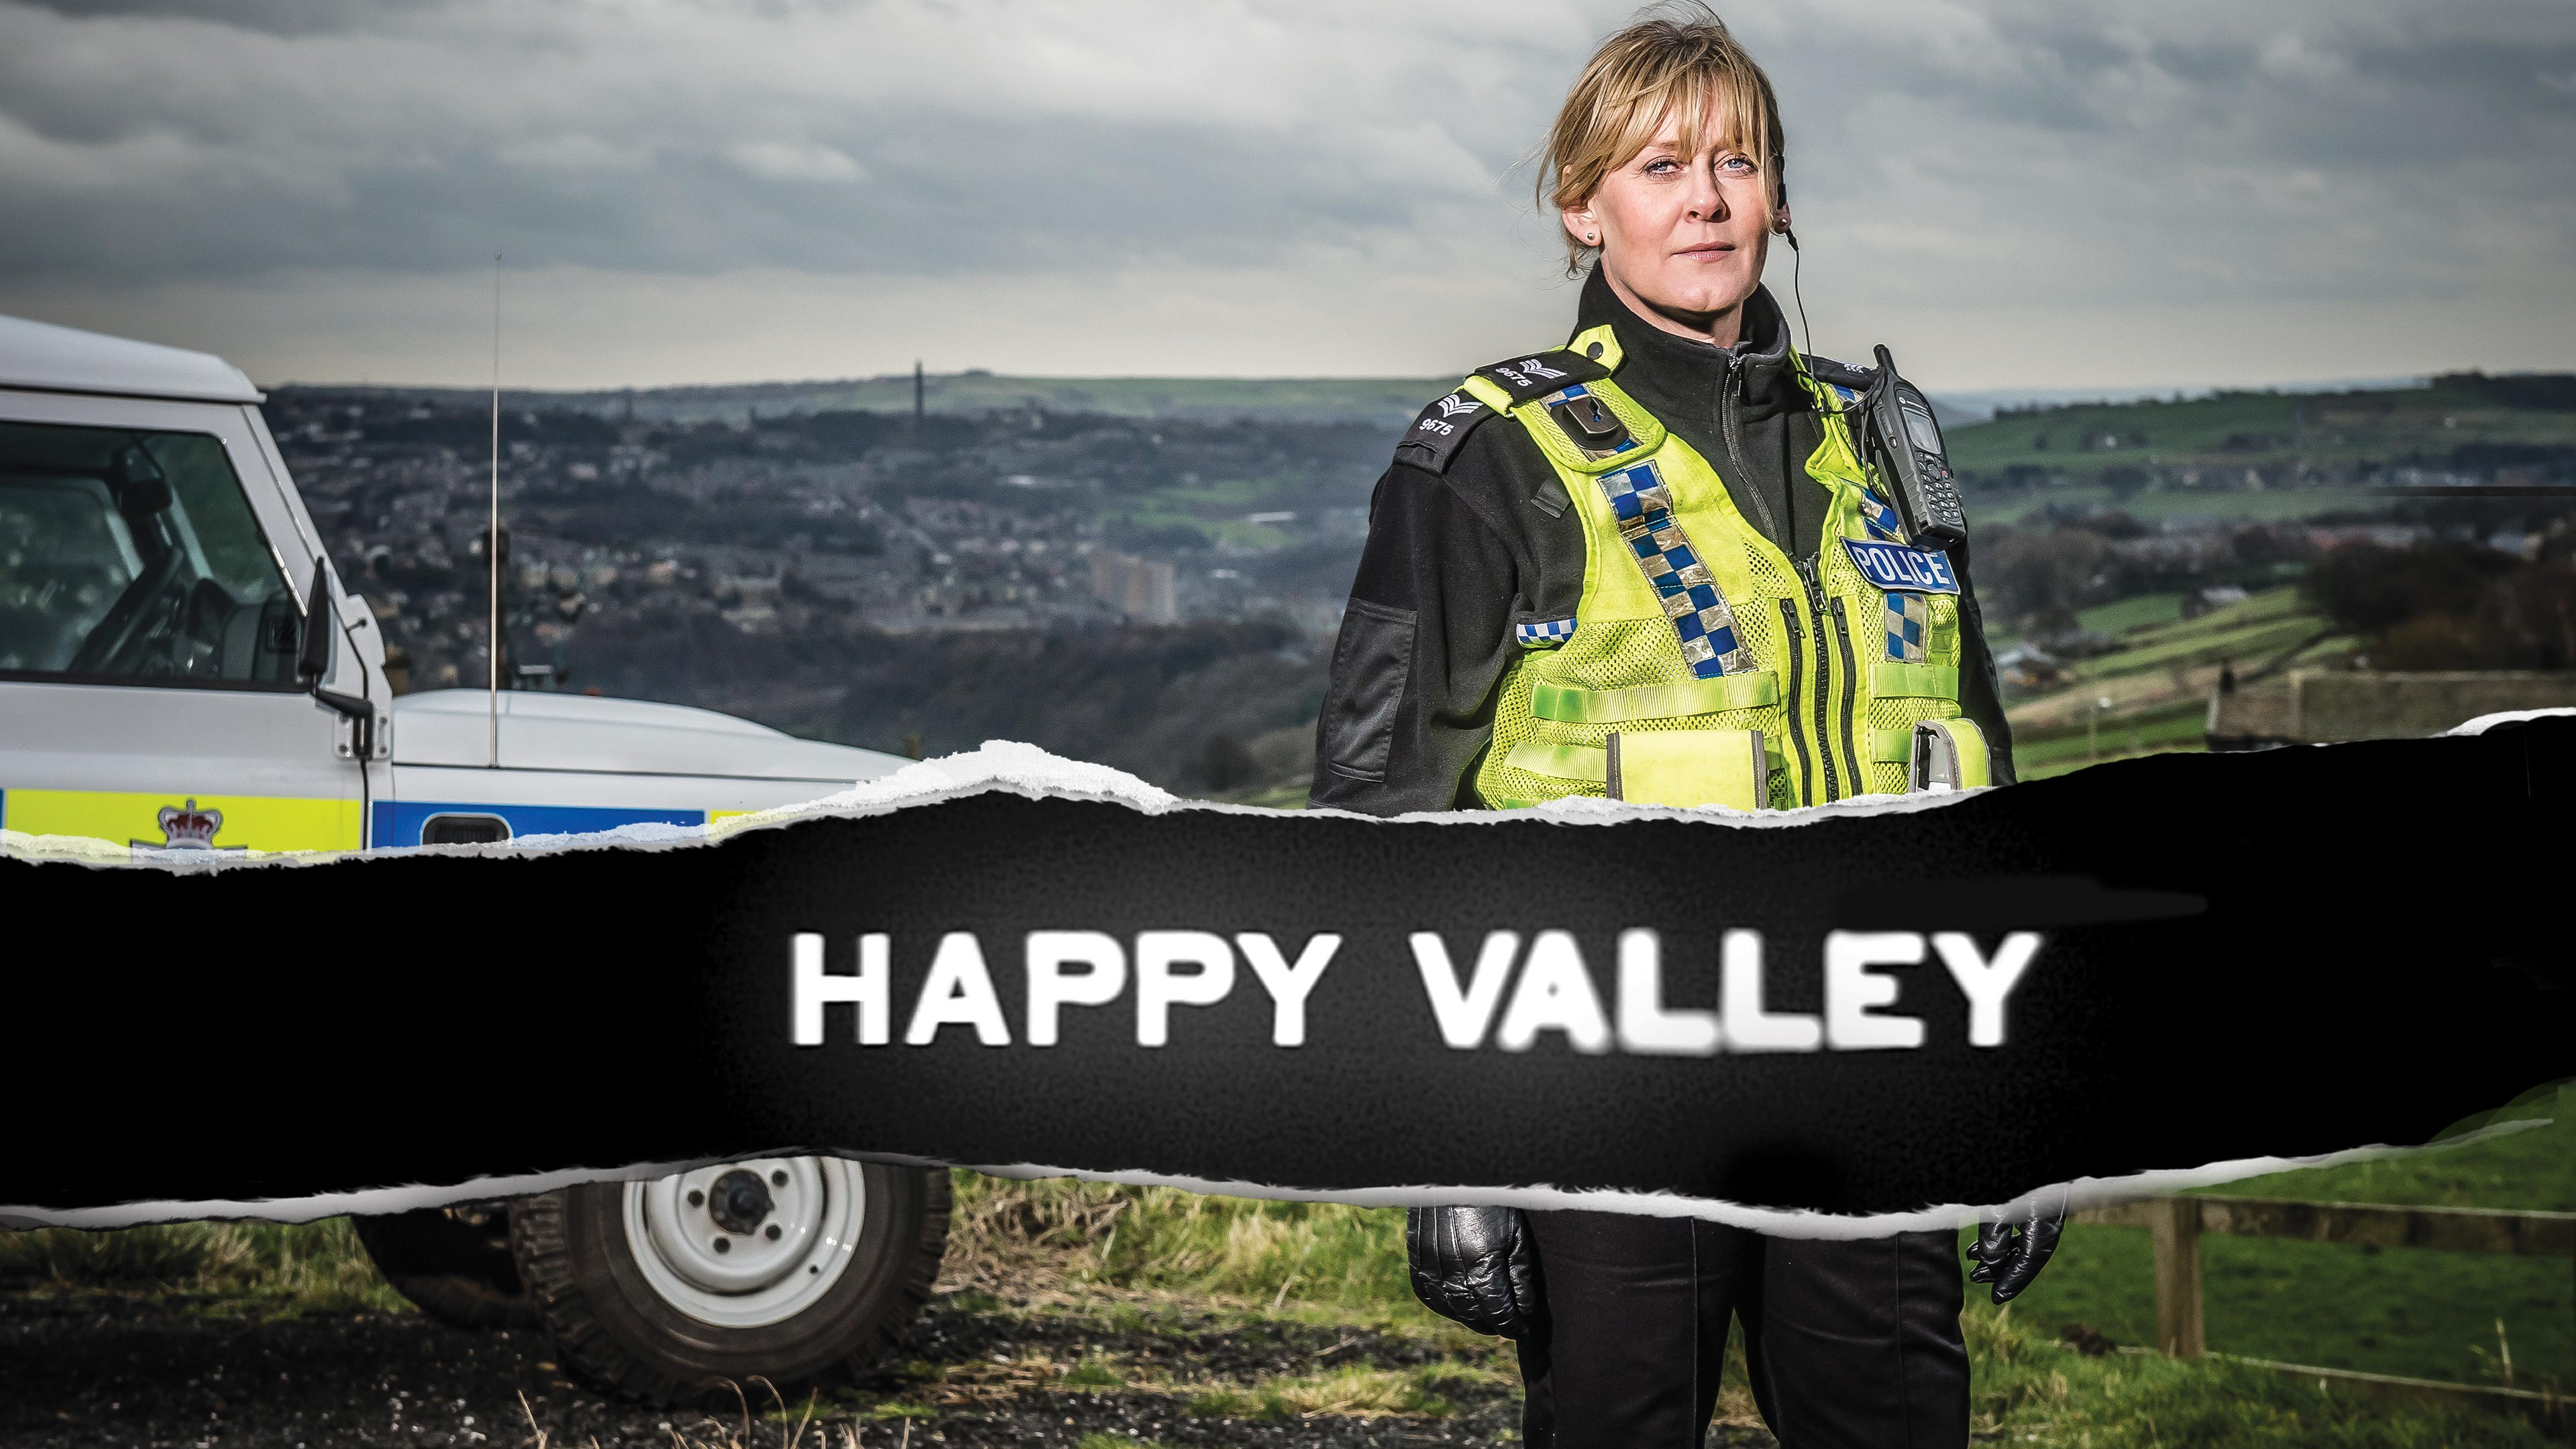 series_tms_SH019363300000_happy-valley__img_wide_poster_16x9